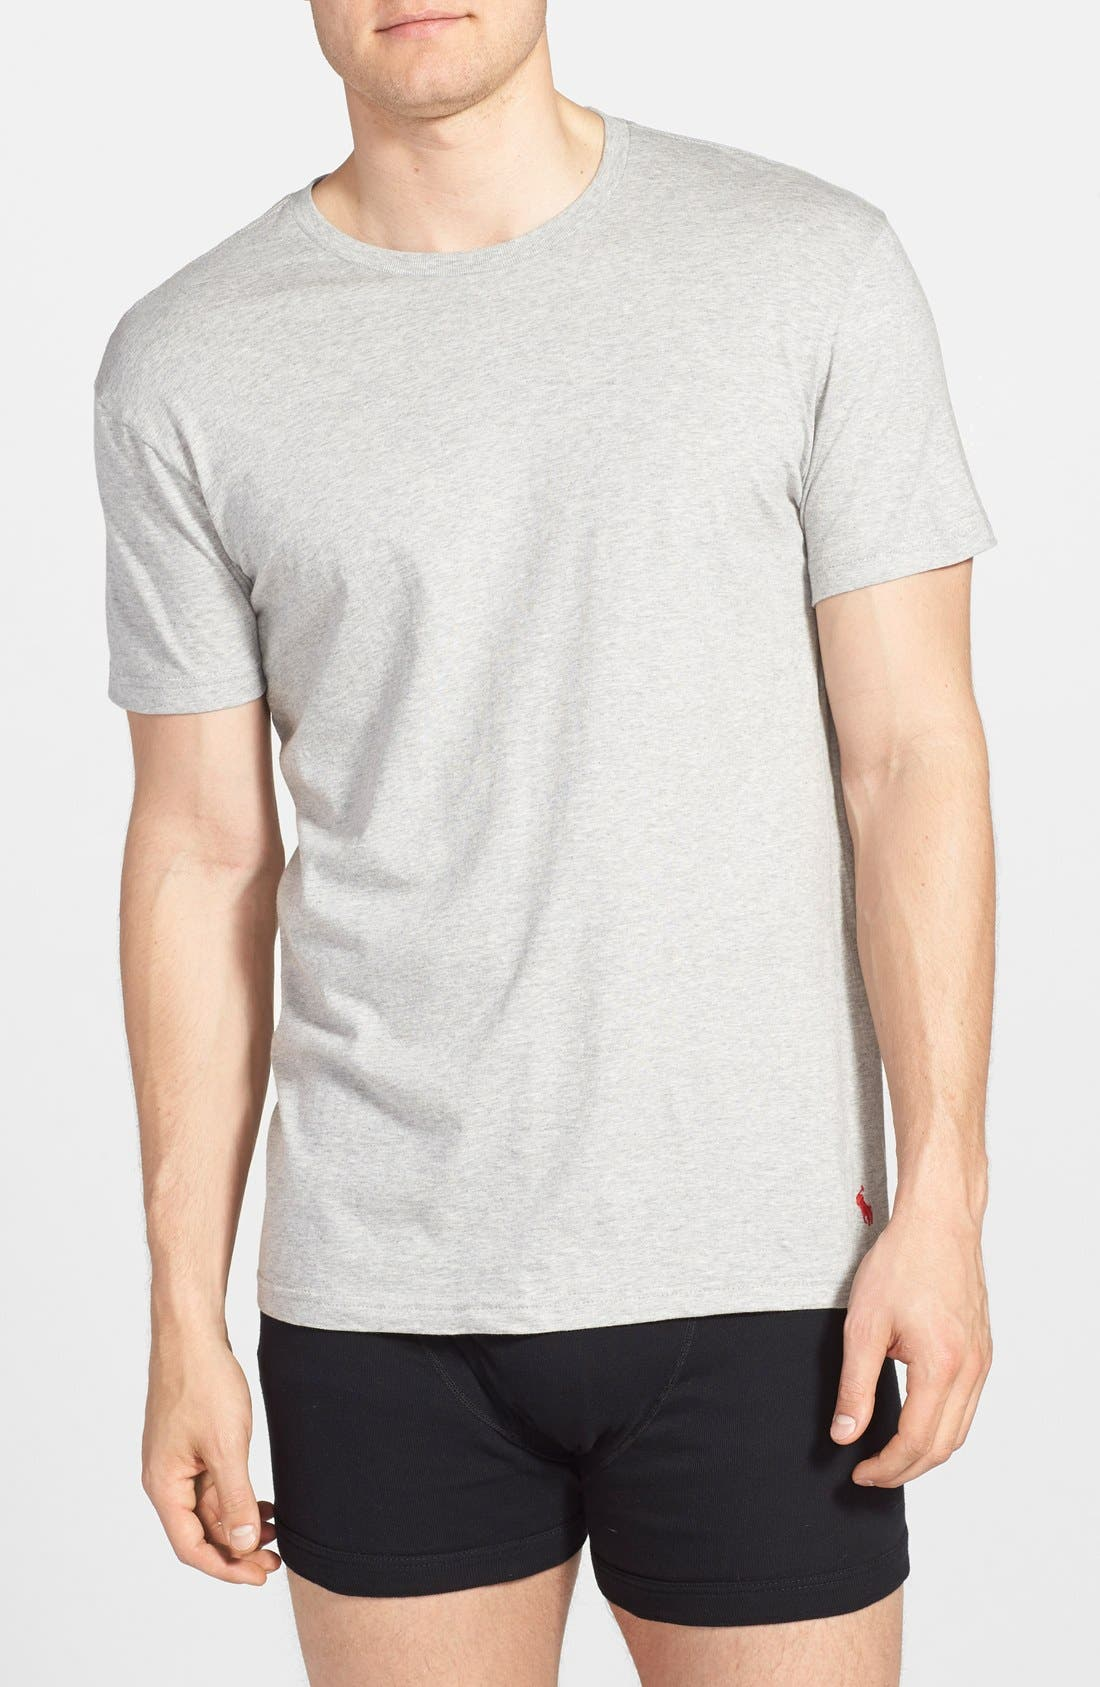 Classic Fit 3-Pack Cotton T-Shirt,                         Main,                         color, BLACK/ GREY/ CHARCOAL